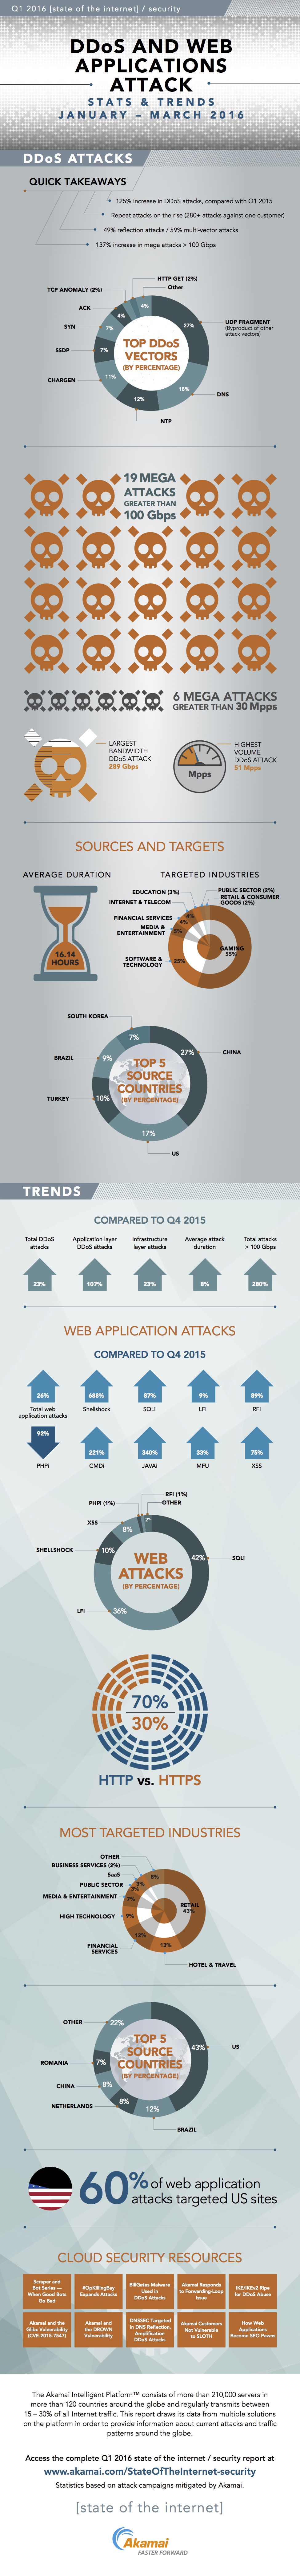 akamai-q1-2016-state-of-the-internet-security-report-infographic